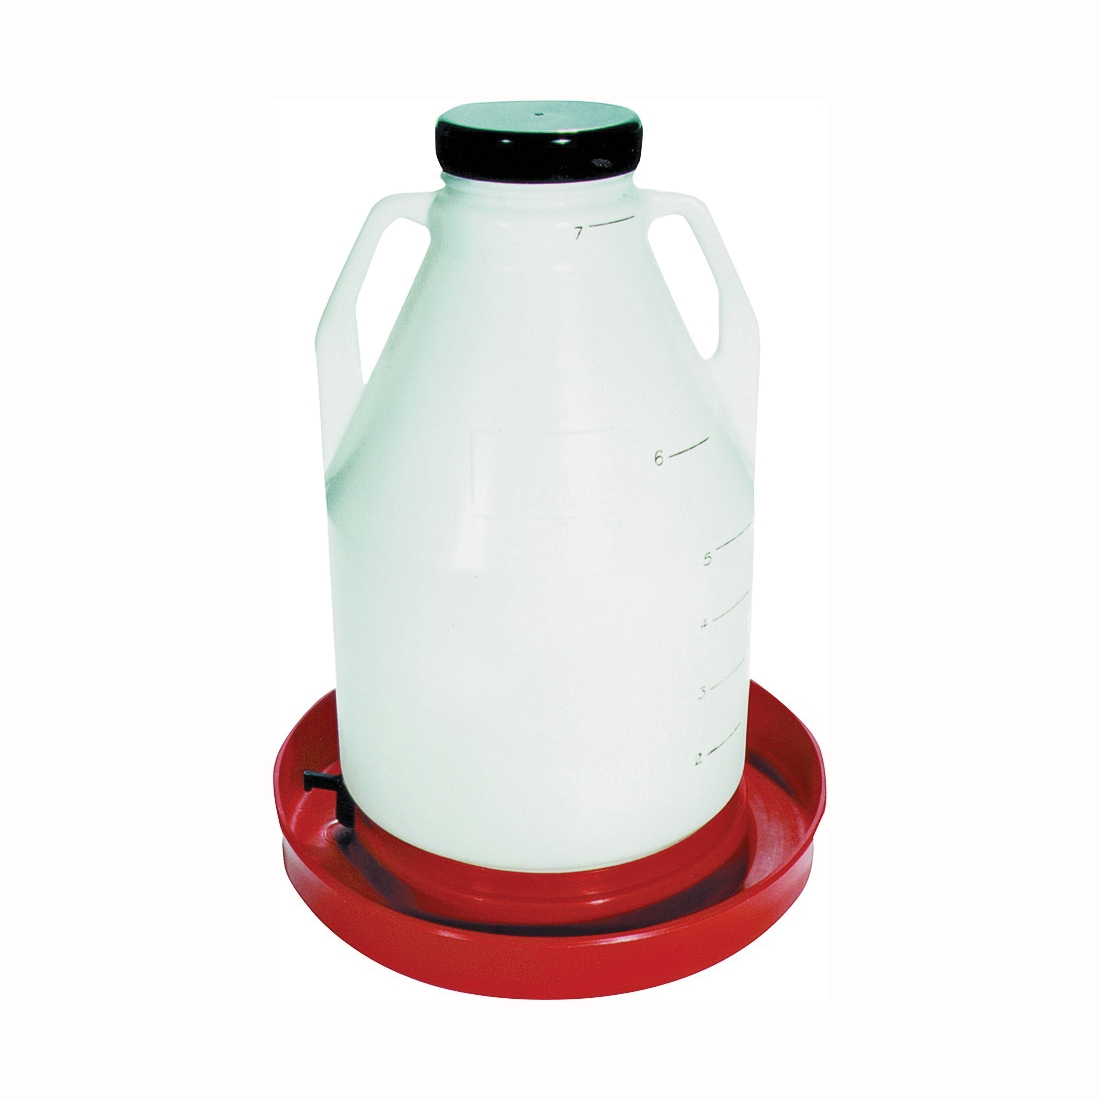 Picture of FORTEX-FORTIFLEX 7GF Poultry Fount, 7 gal Capacity